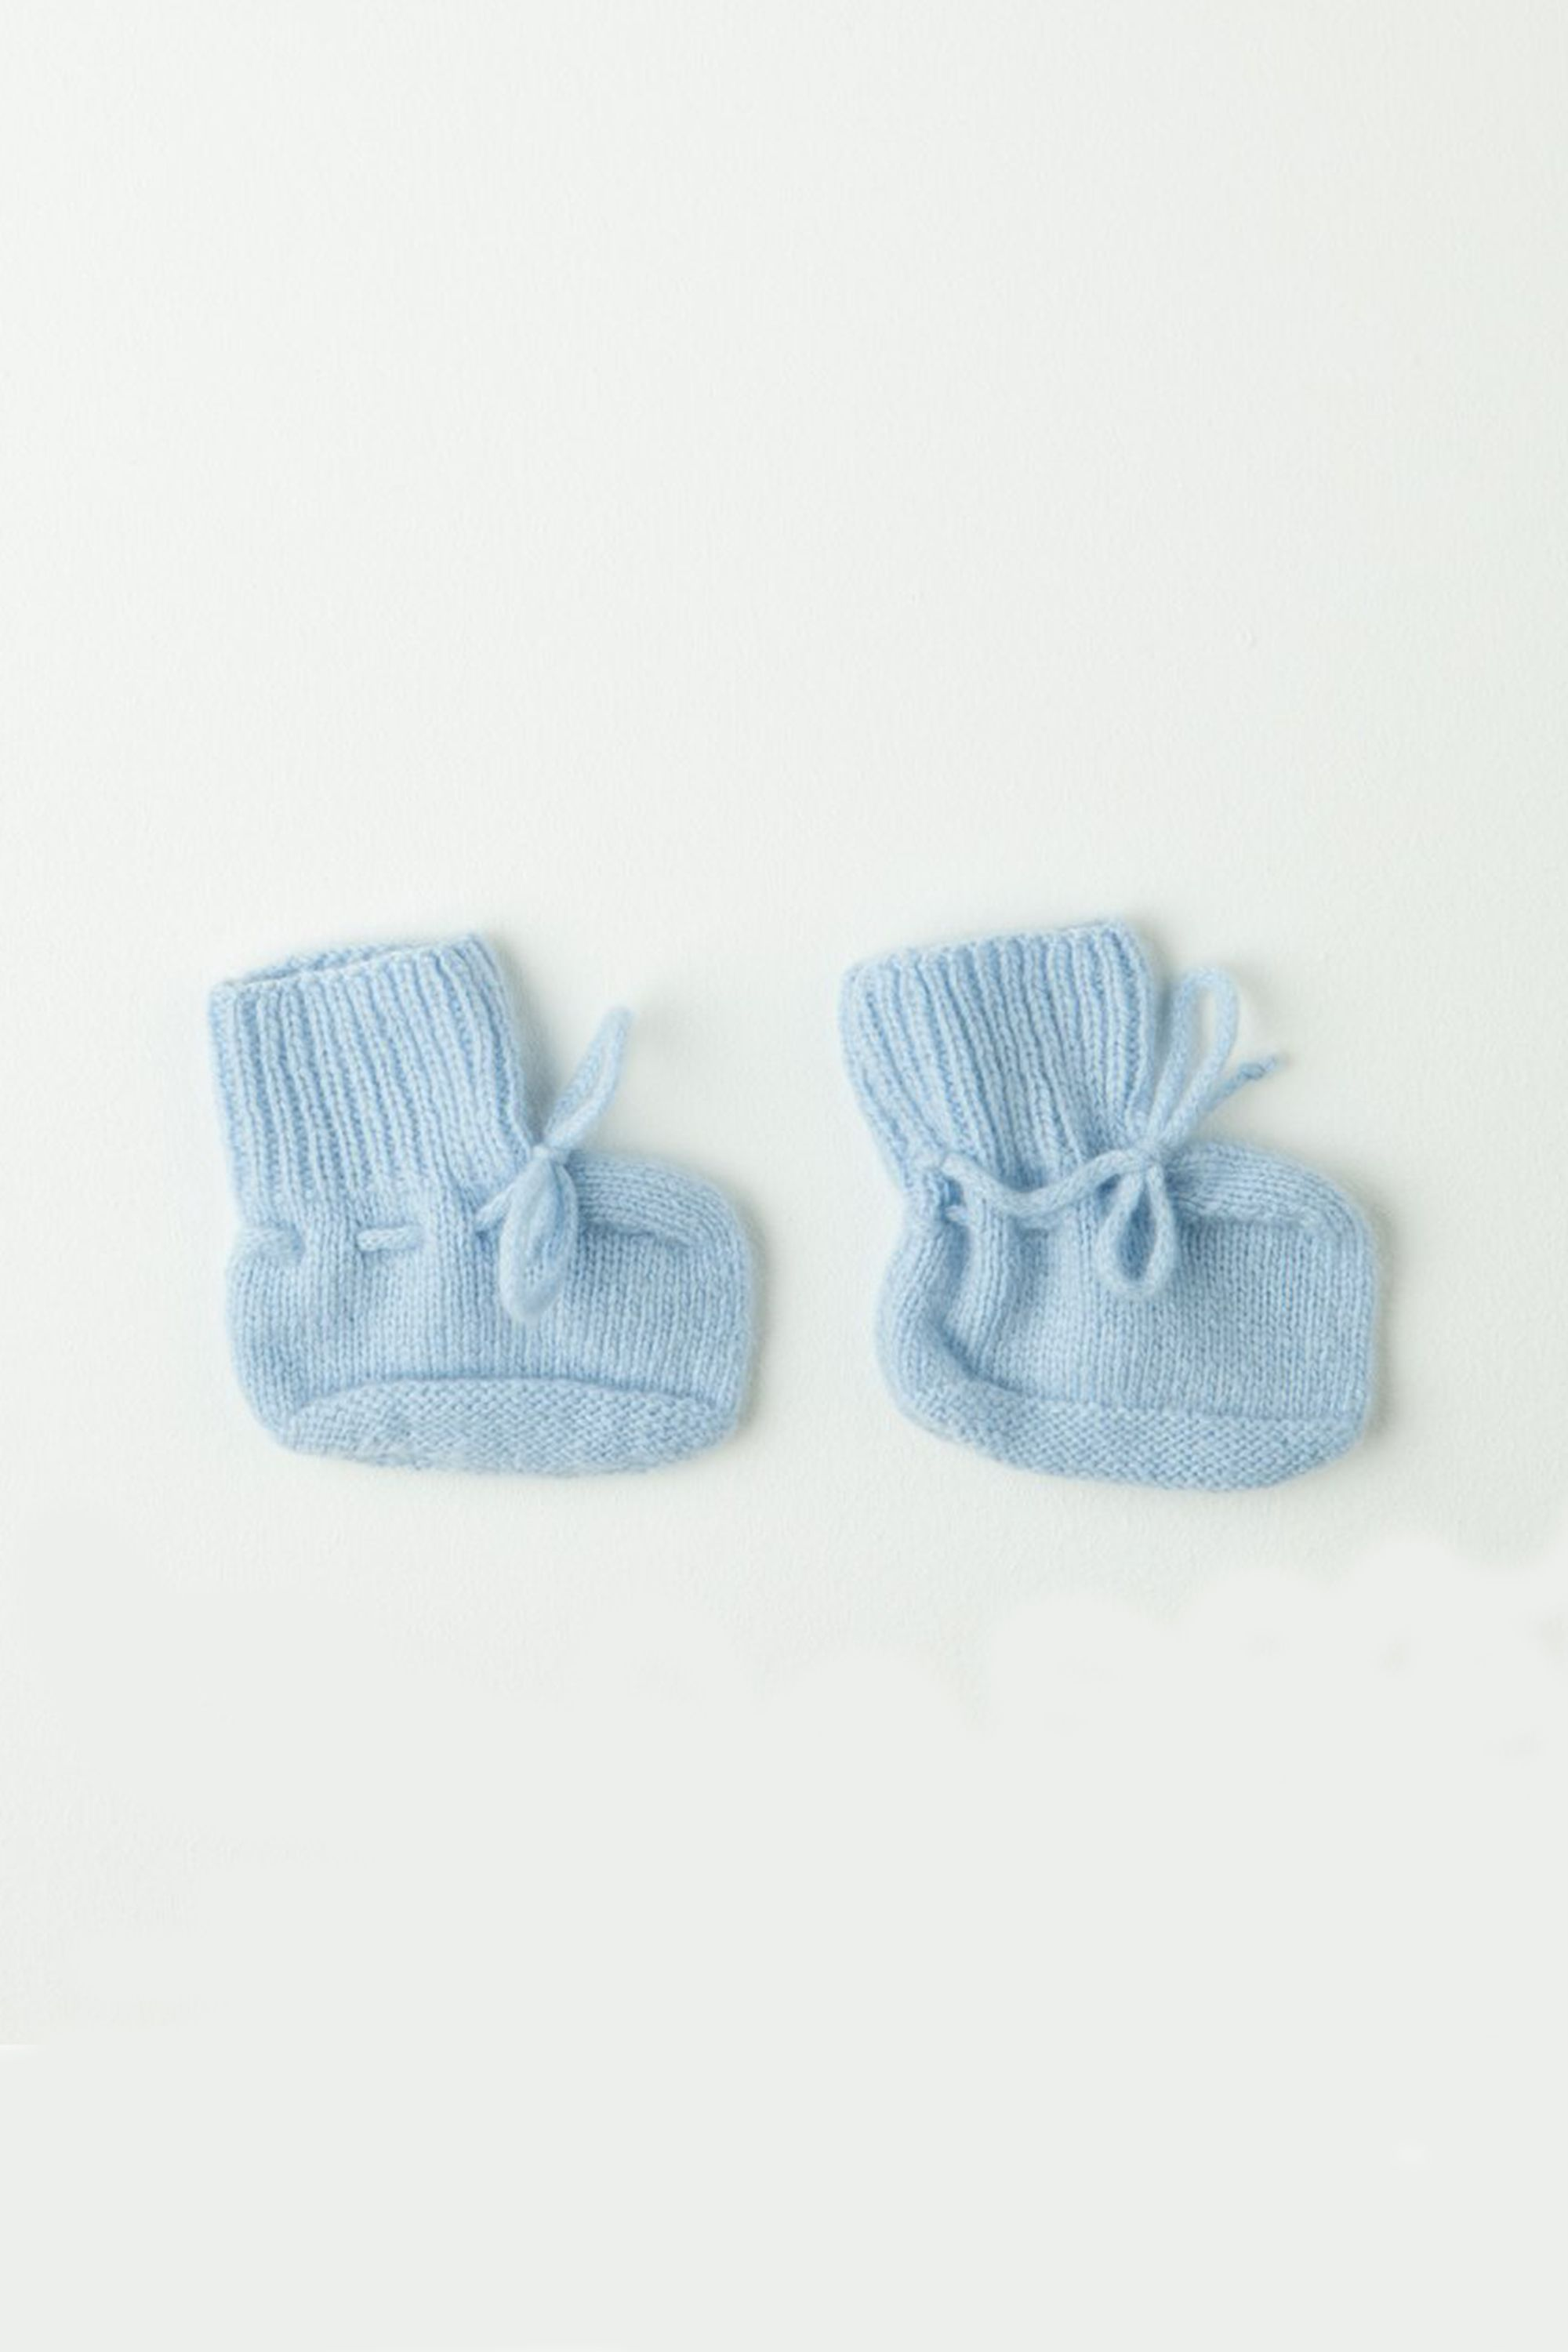 fd033714088a What to get for a christening - best christening gift guide